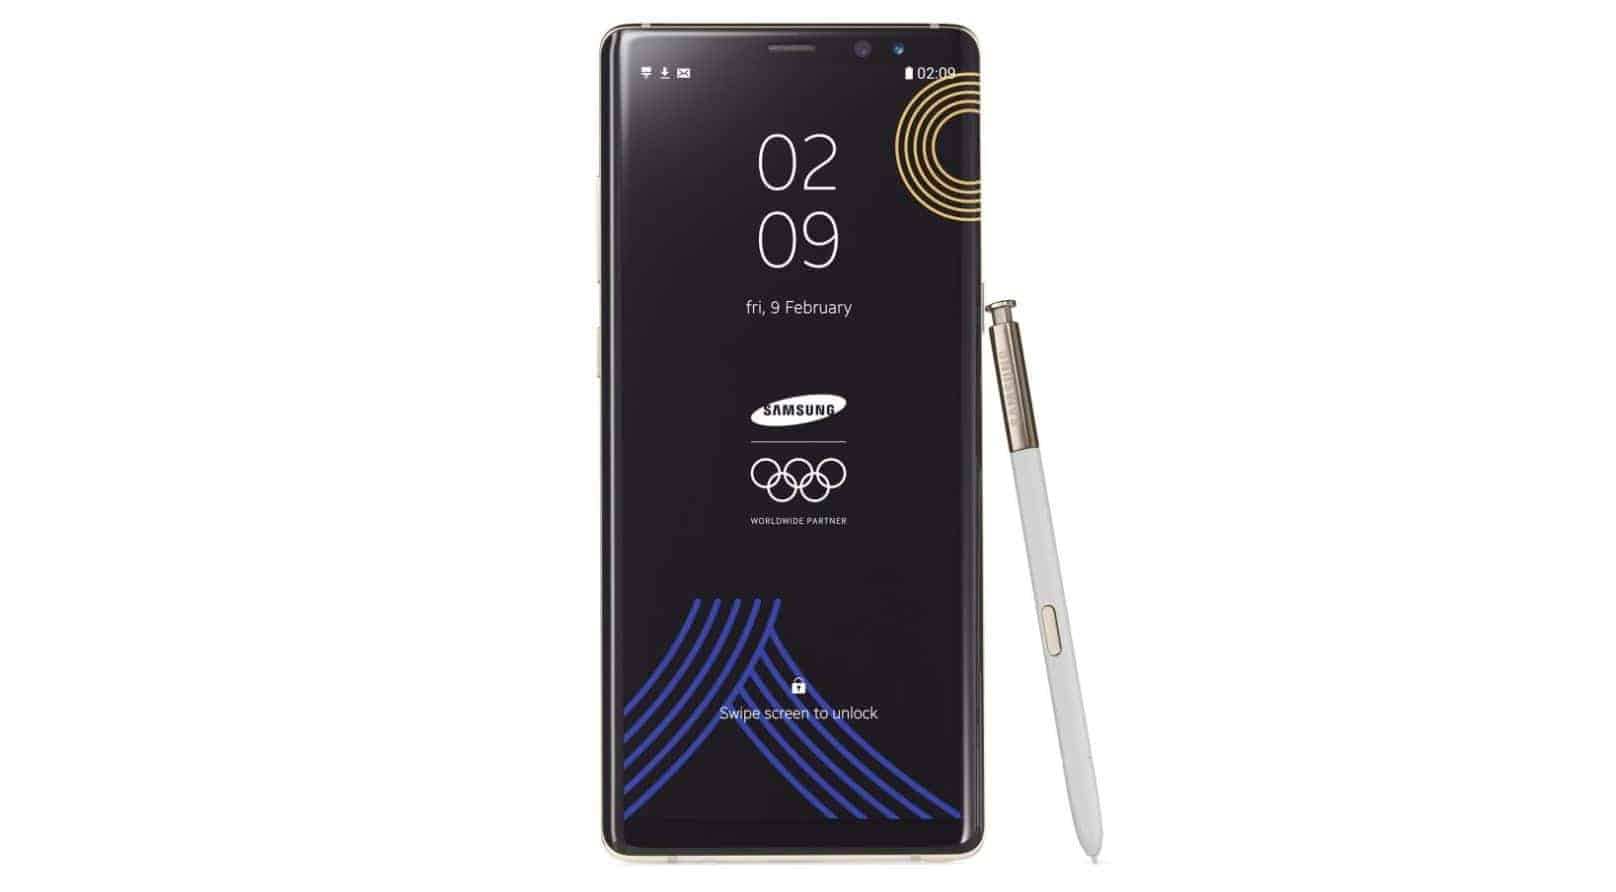 Samsung Galaxy Note 8 2018 Winter Olympics Edition